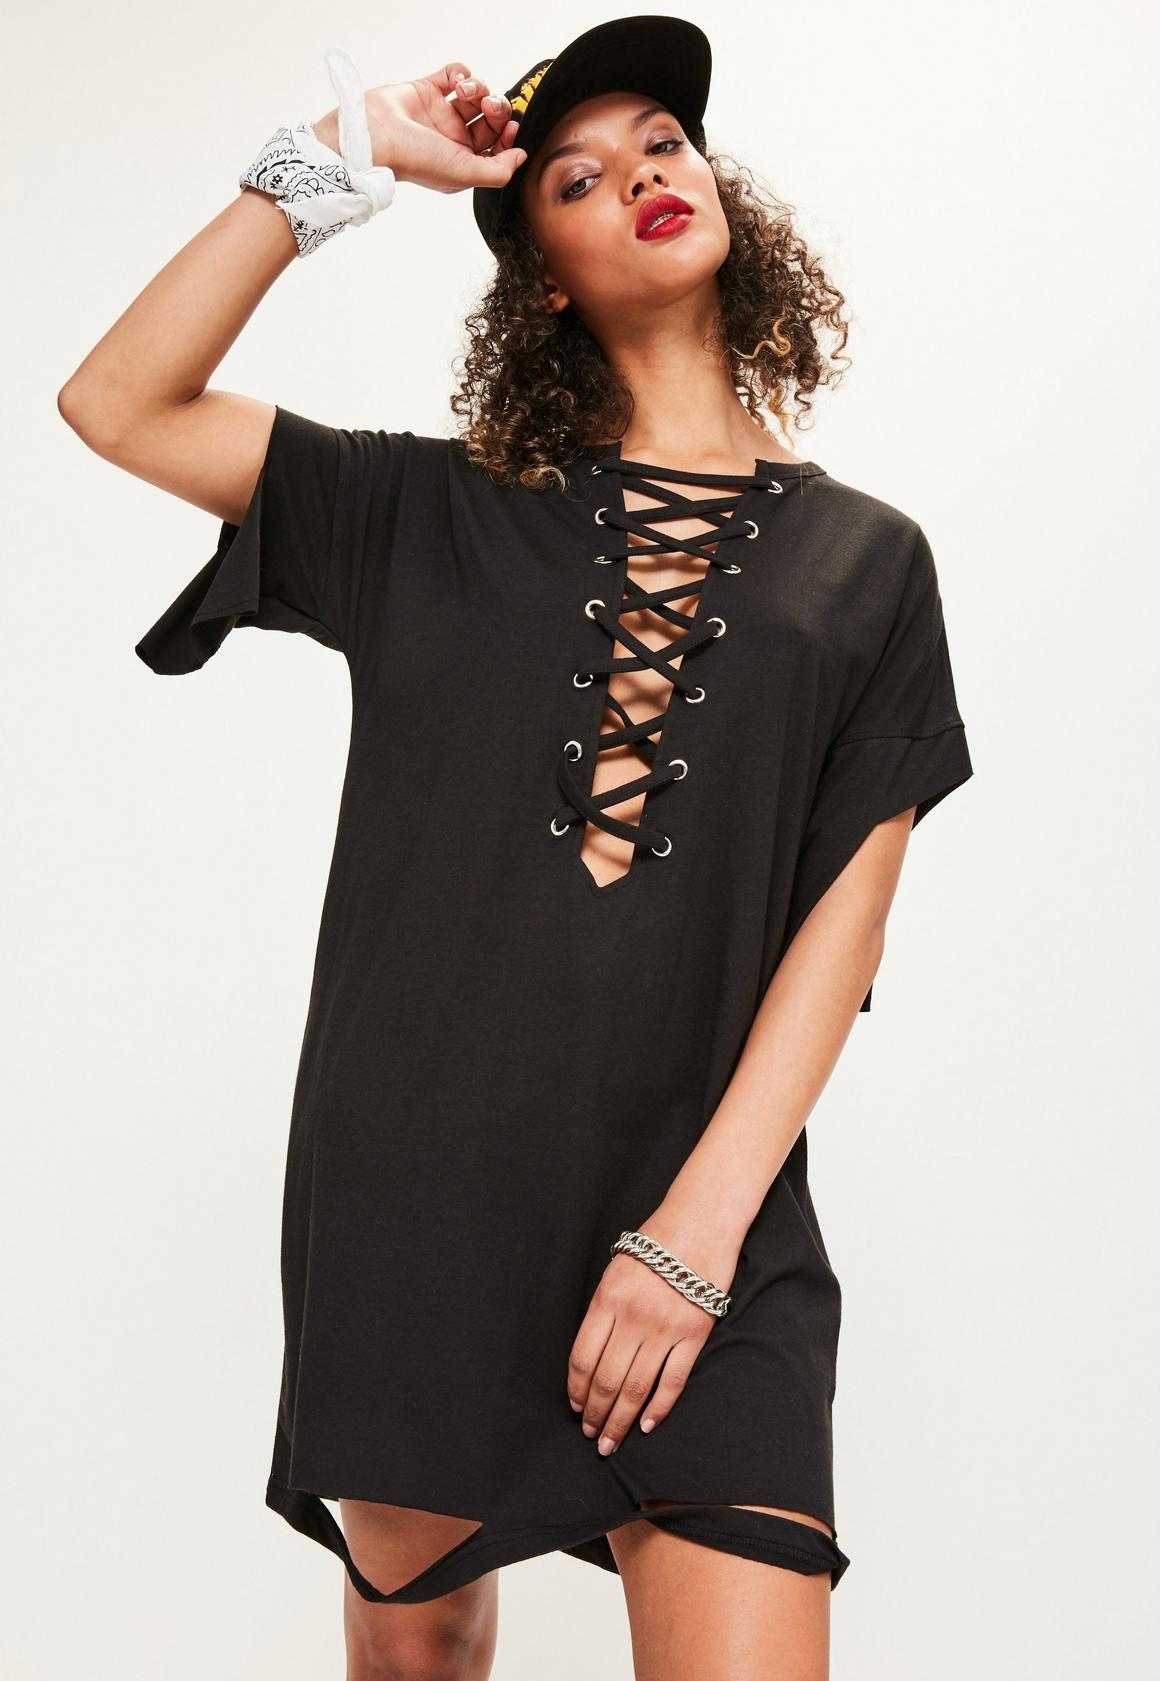 Black t shirt with lace - Black Lace Up Distressed T Shirt Dress Previous Next